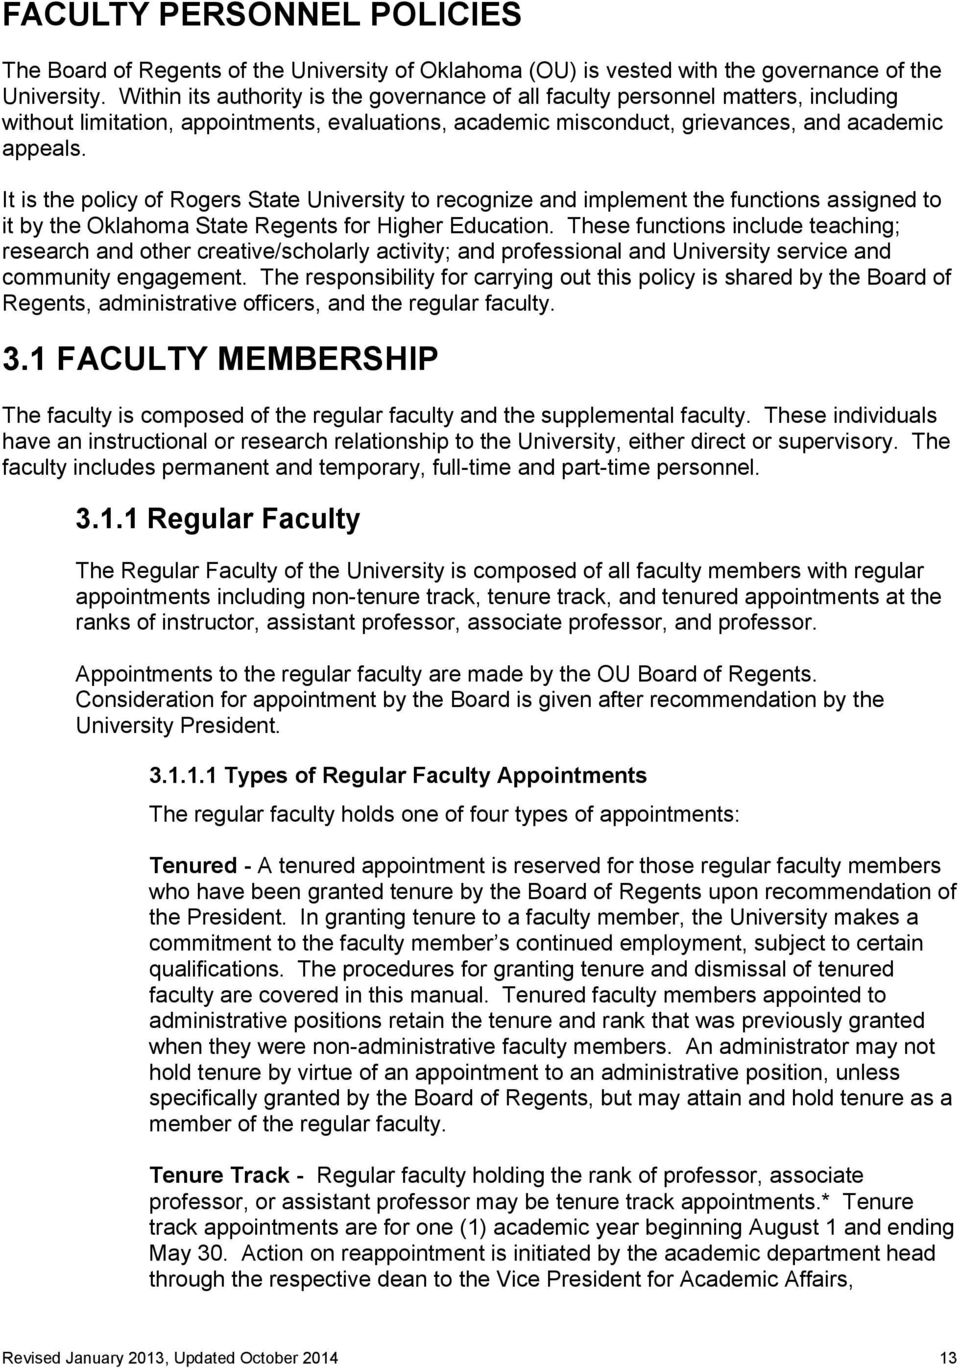 It is the policy of Rogers State University to recognize and implement the functions assigned to it by the Oklahoma State Regents for Higher Education.